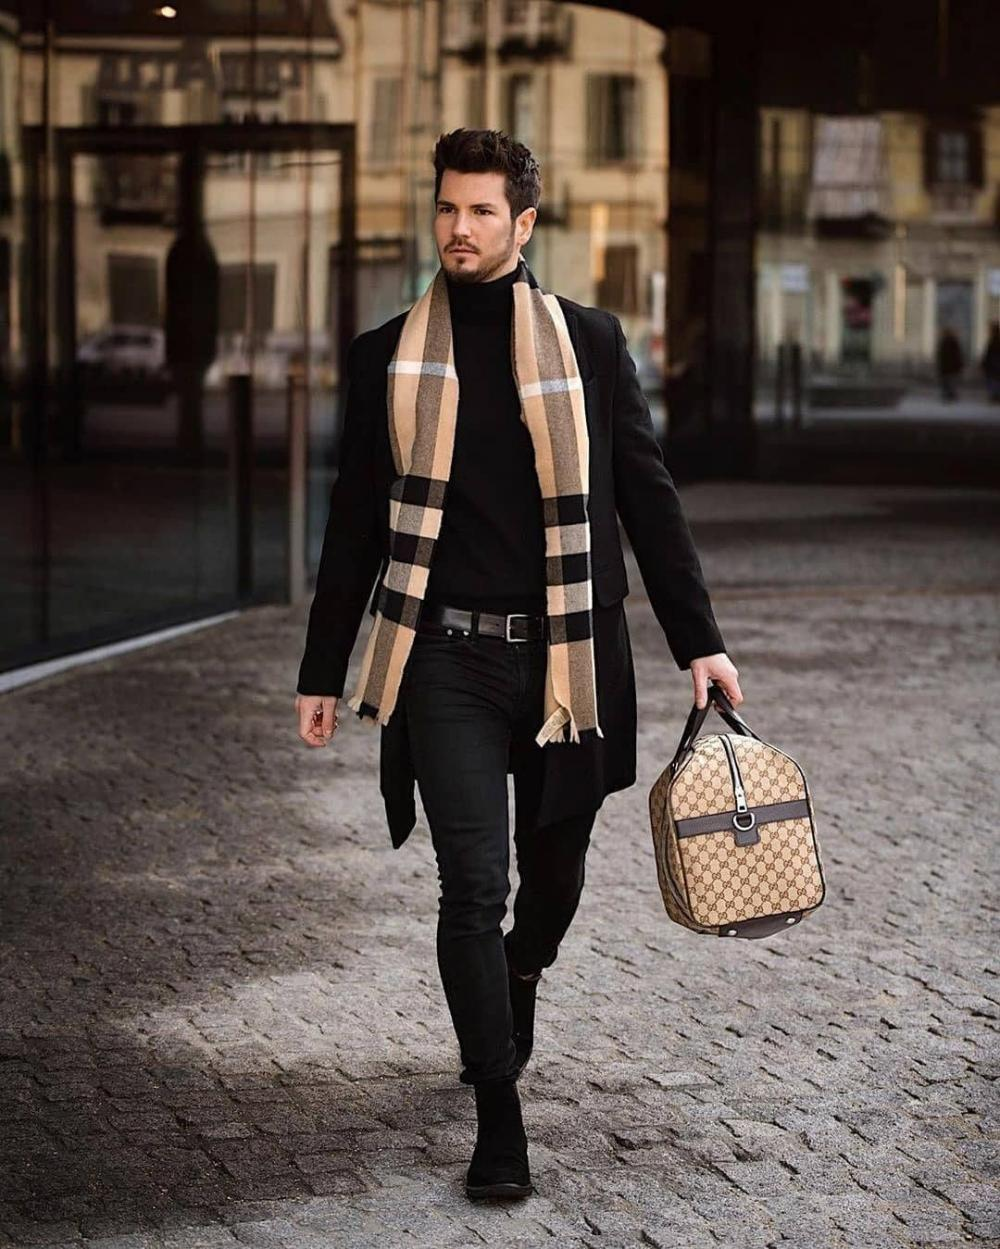 Classic scarf pattern is a great choice for any outfit